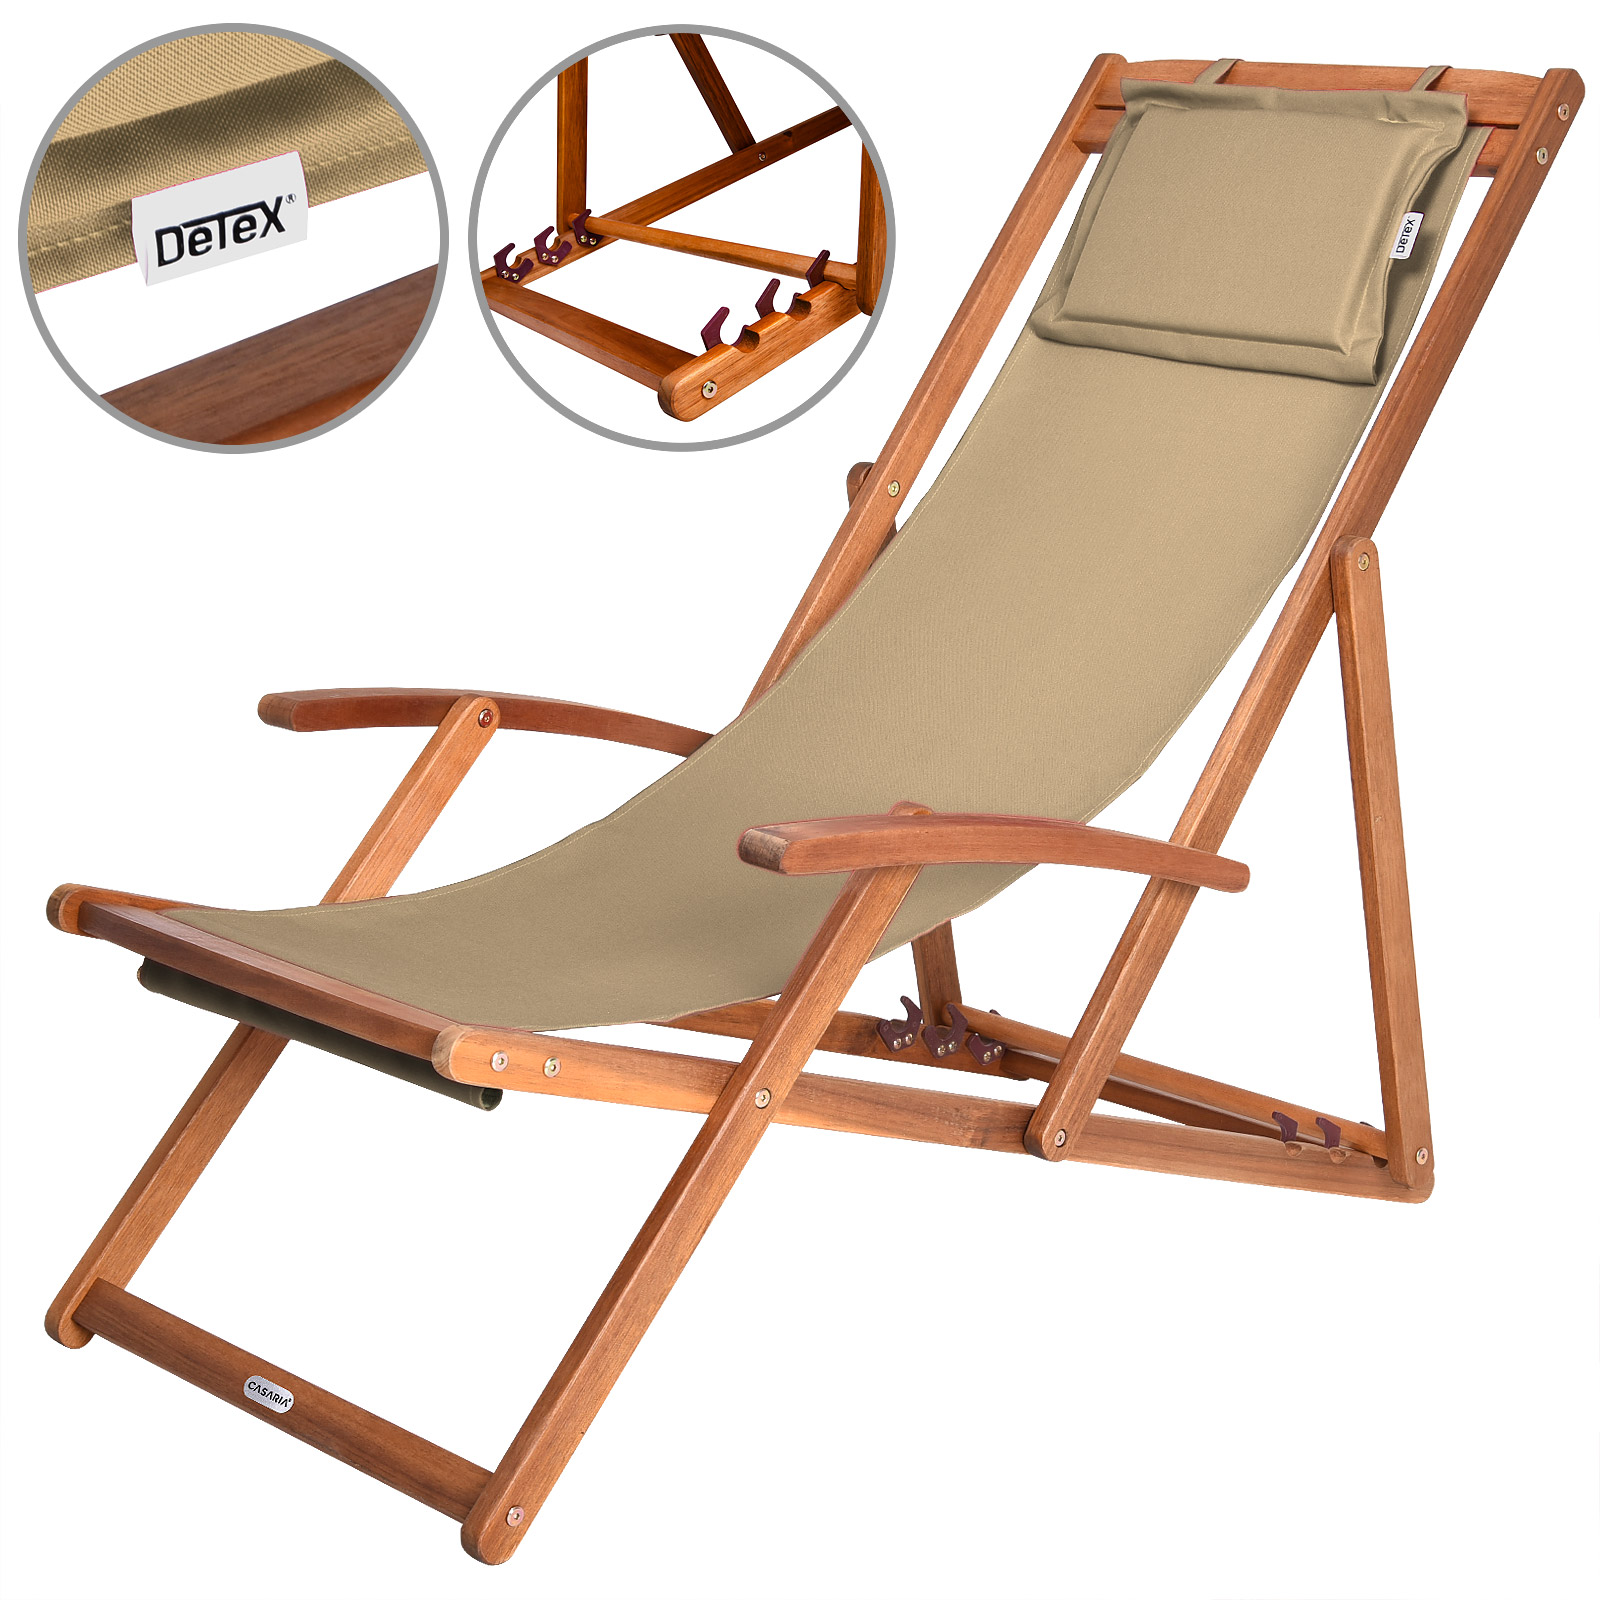 Wooden Folding Garden Deck Chair Sun Bed Acacia Hardwood Canvas Cream Bei